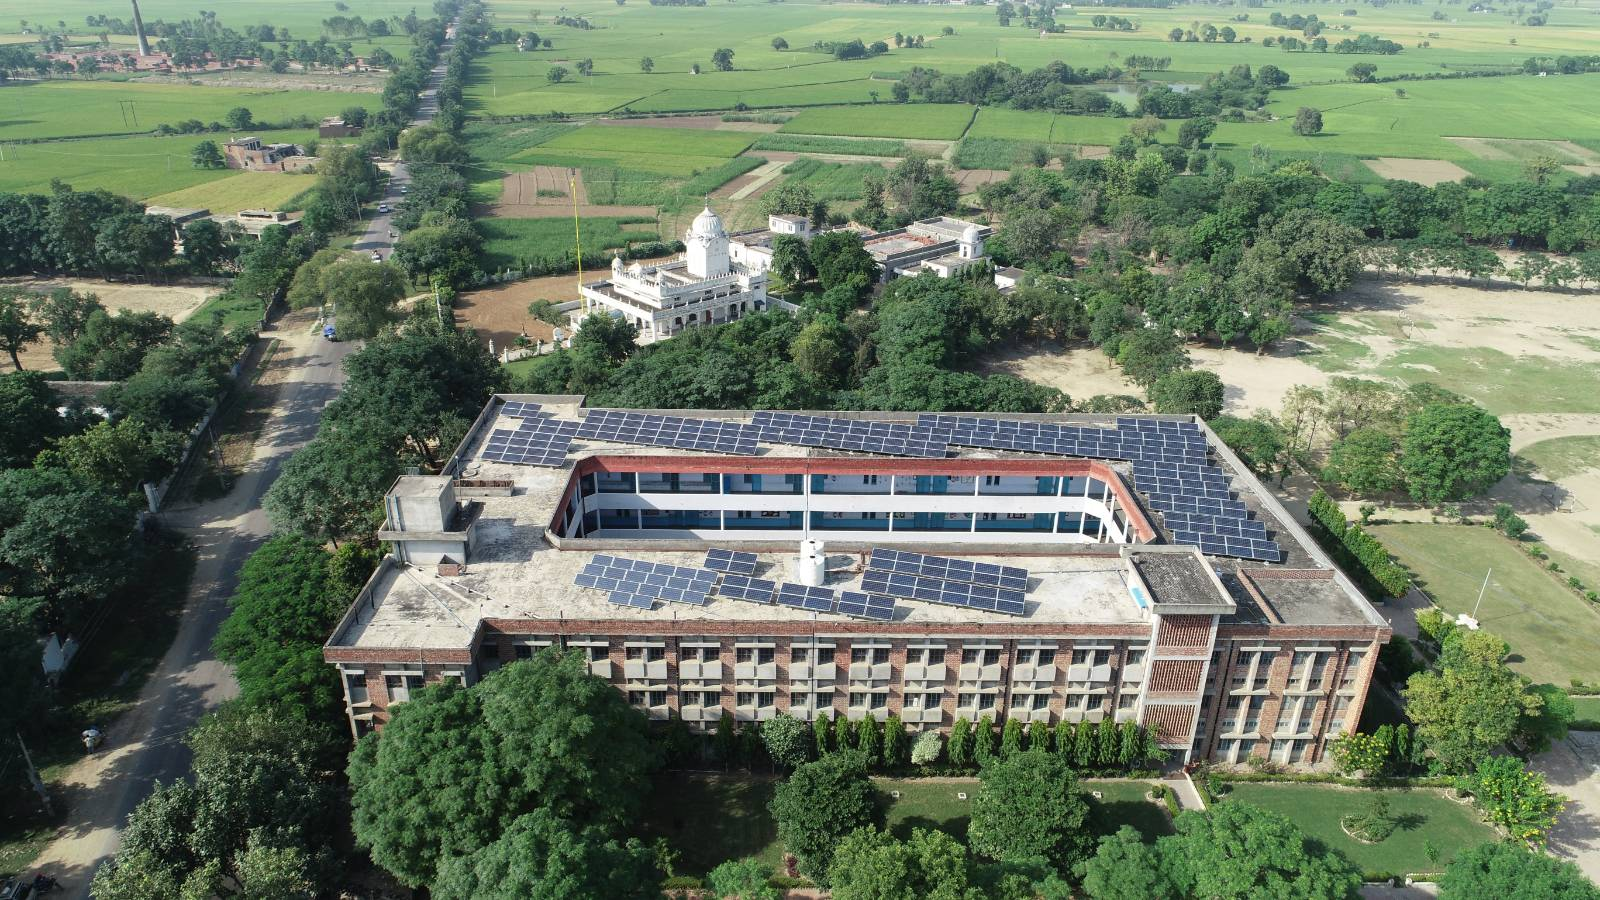 Aerial View of Akal Academy Fatehgarh Channa